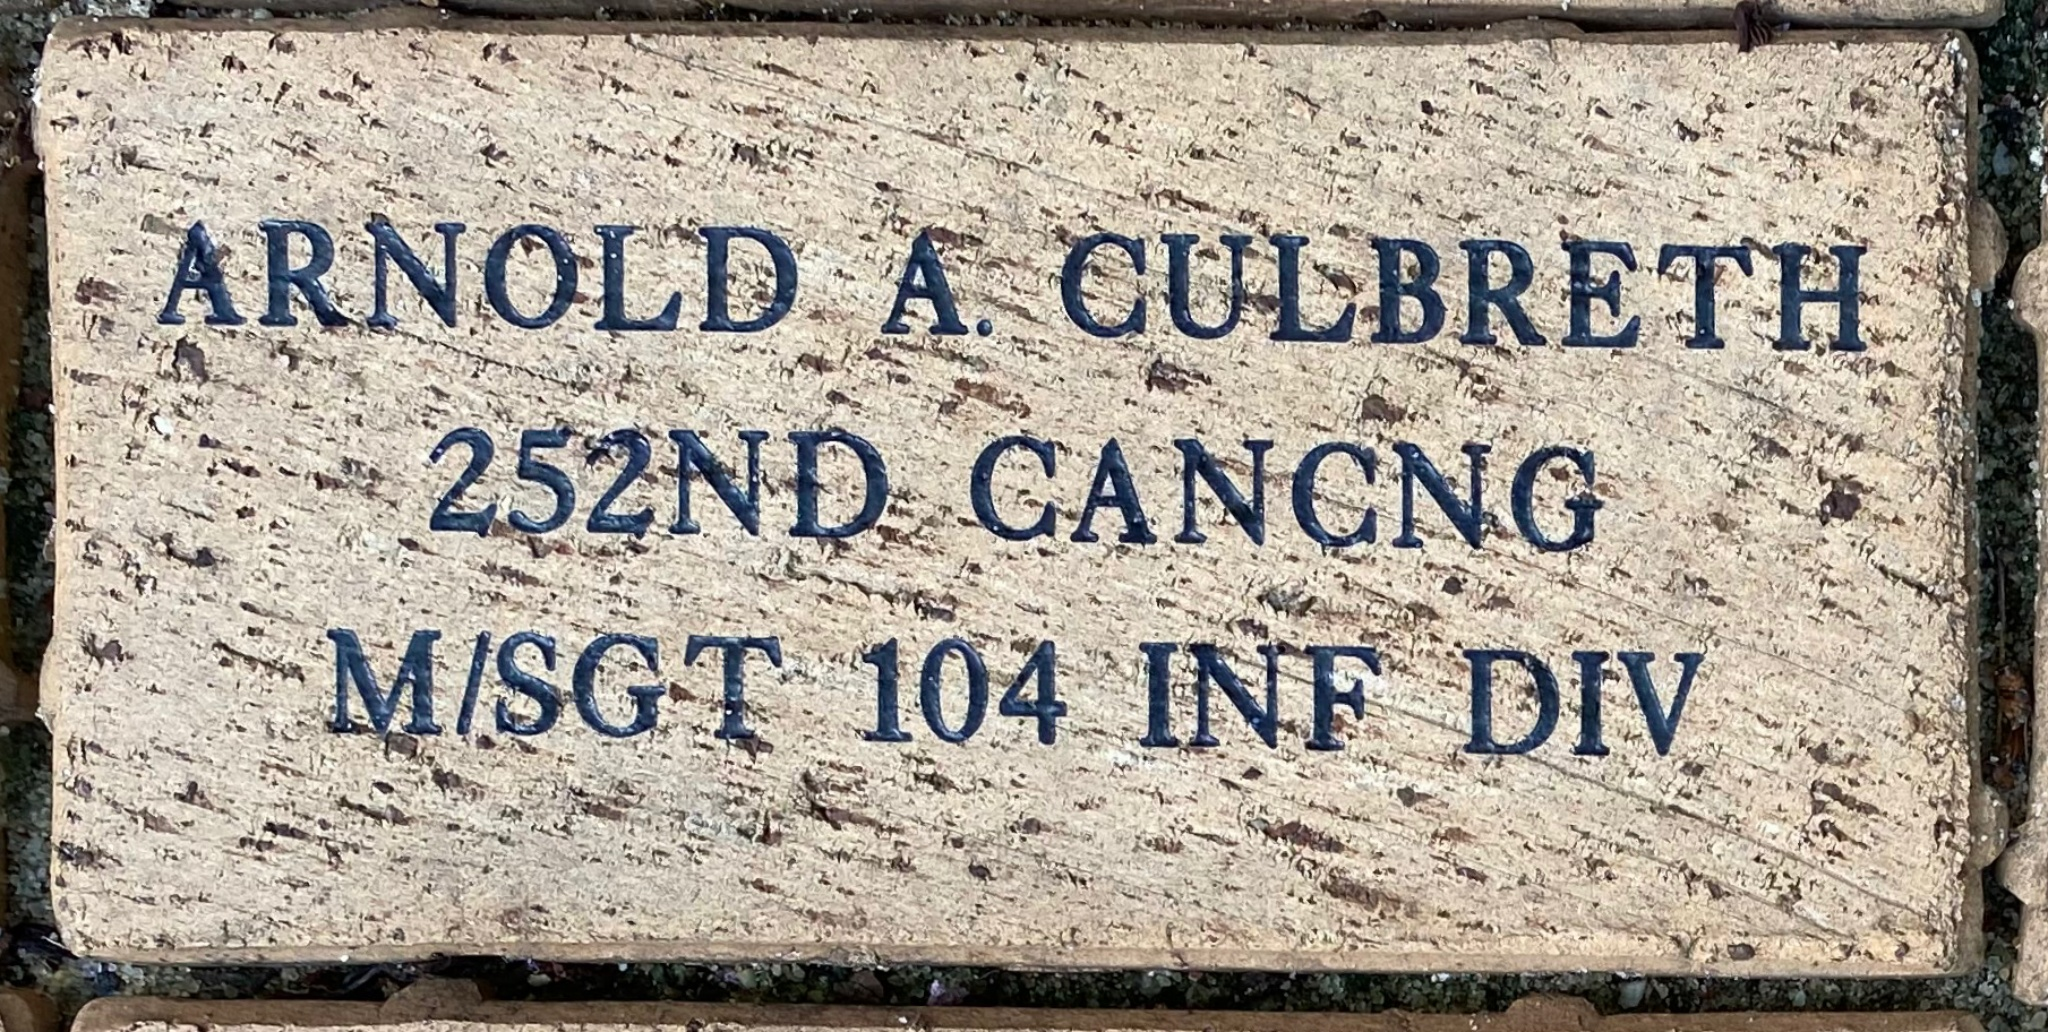 ARNOLD A CULBRETH 252ND CANCNG M/SGT 104 INF DIV